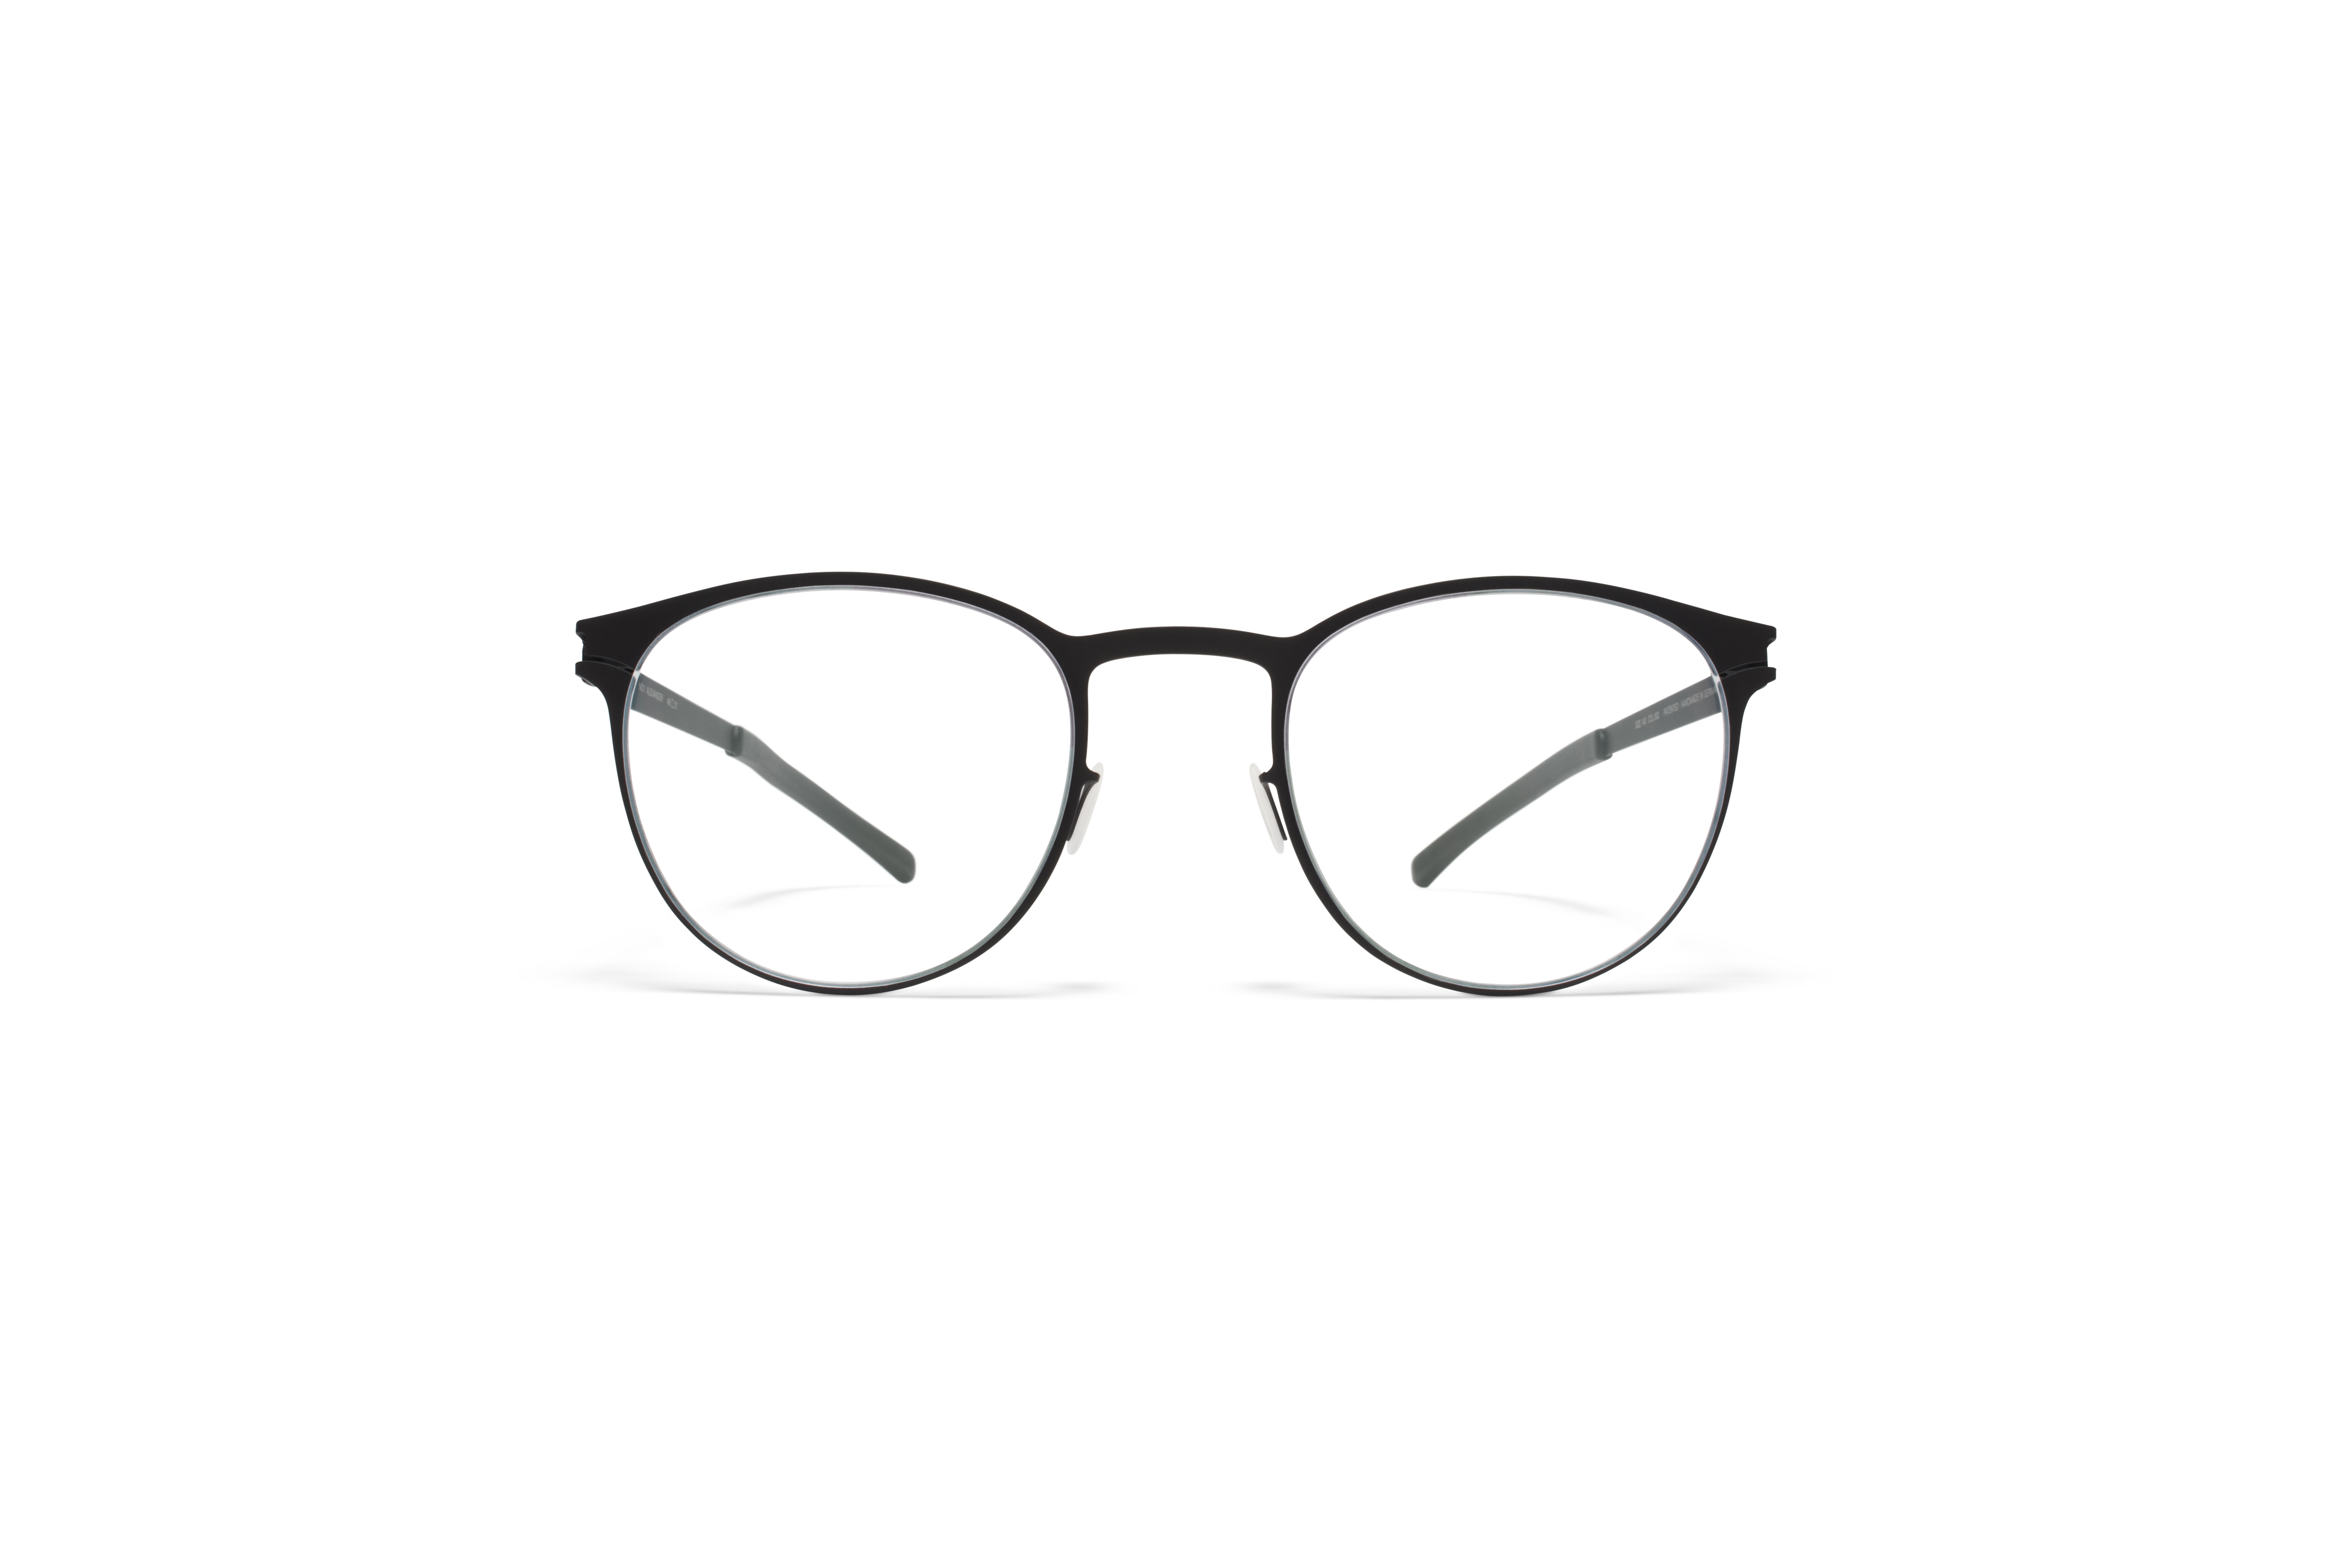 Mykita Usa | Mykita Glasses | Mykita Bernhard Willhelm